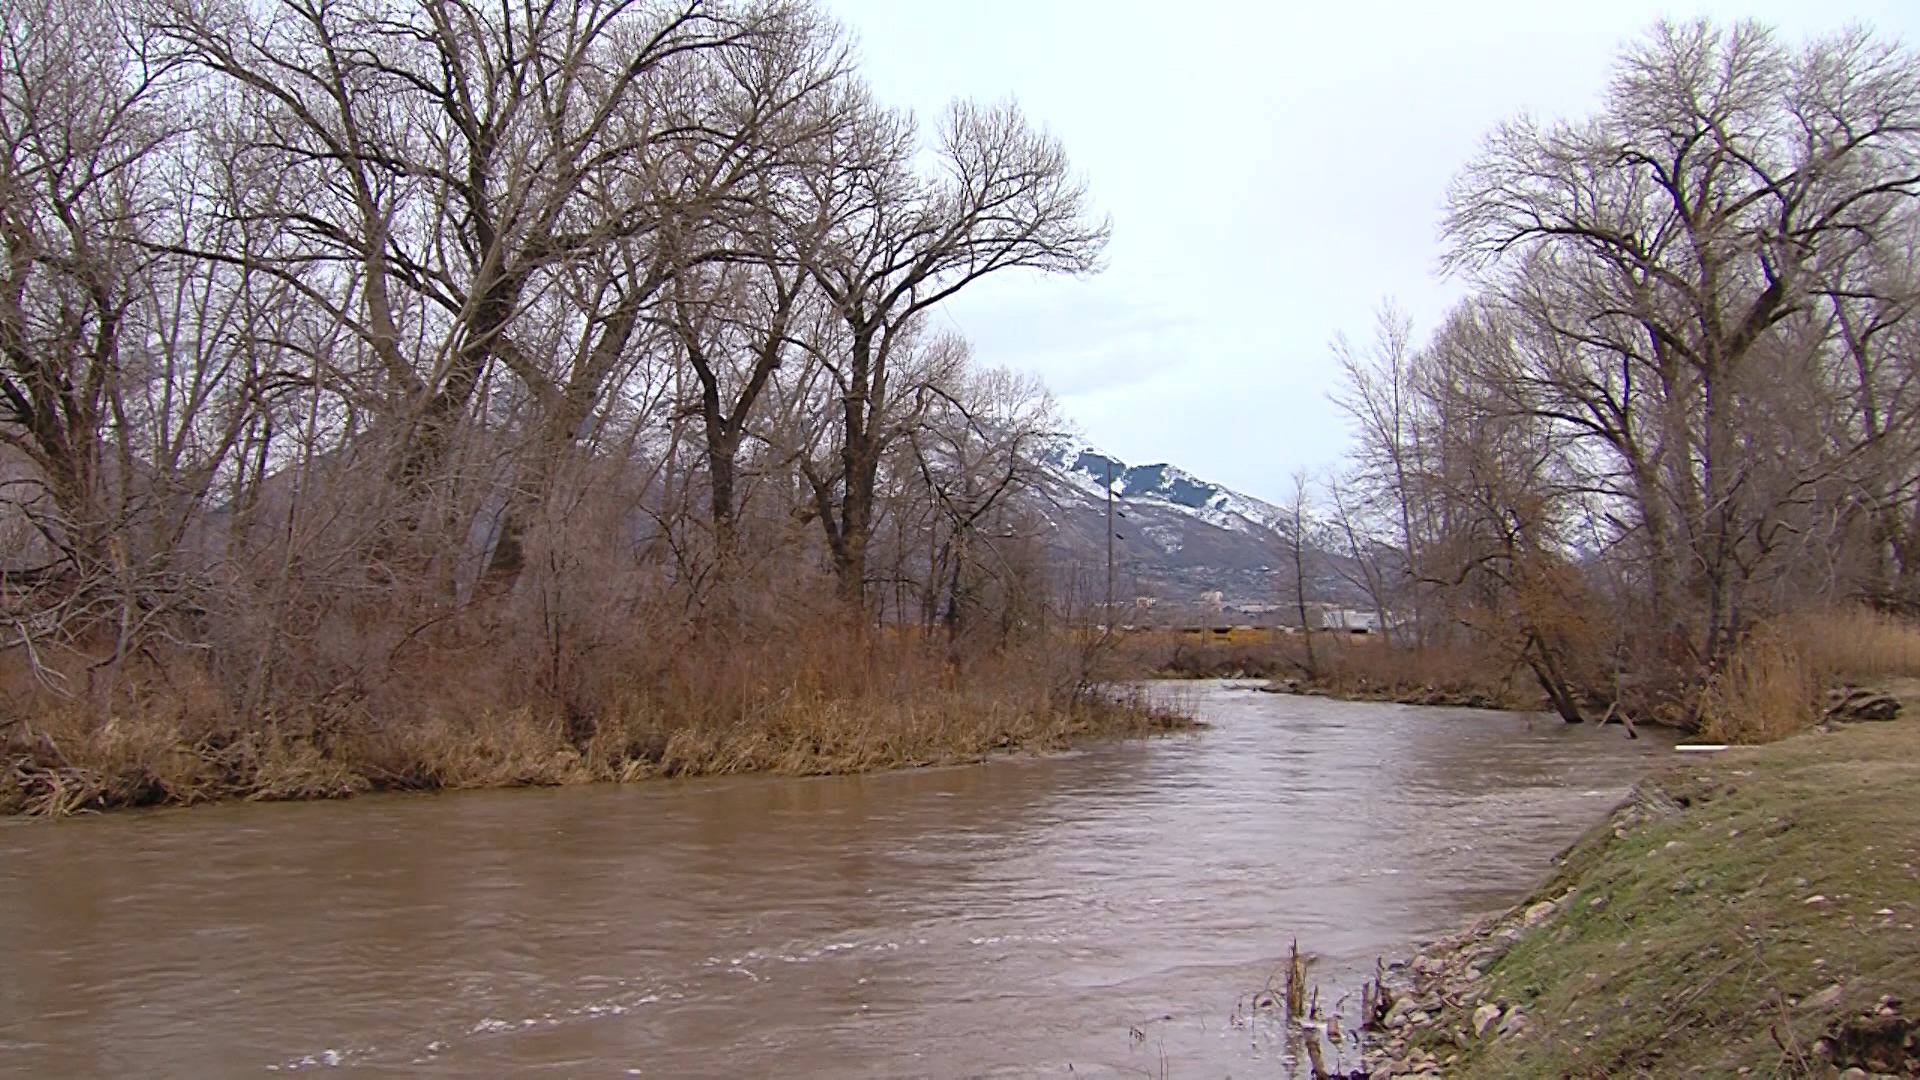 Higher than average temperatures to bring accelerated snowmelt, swelling waterways